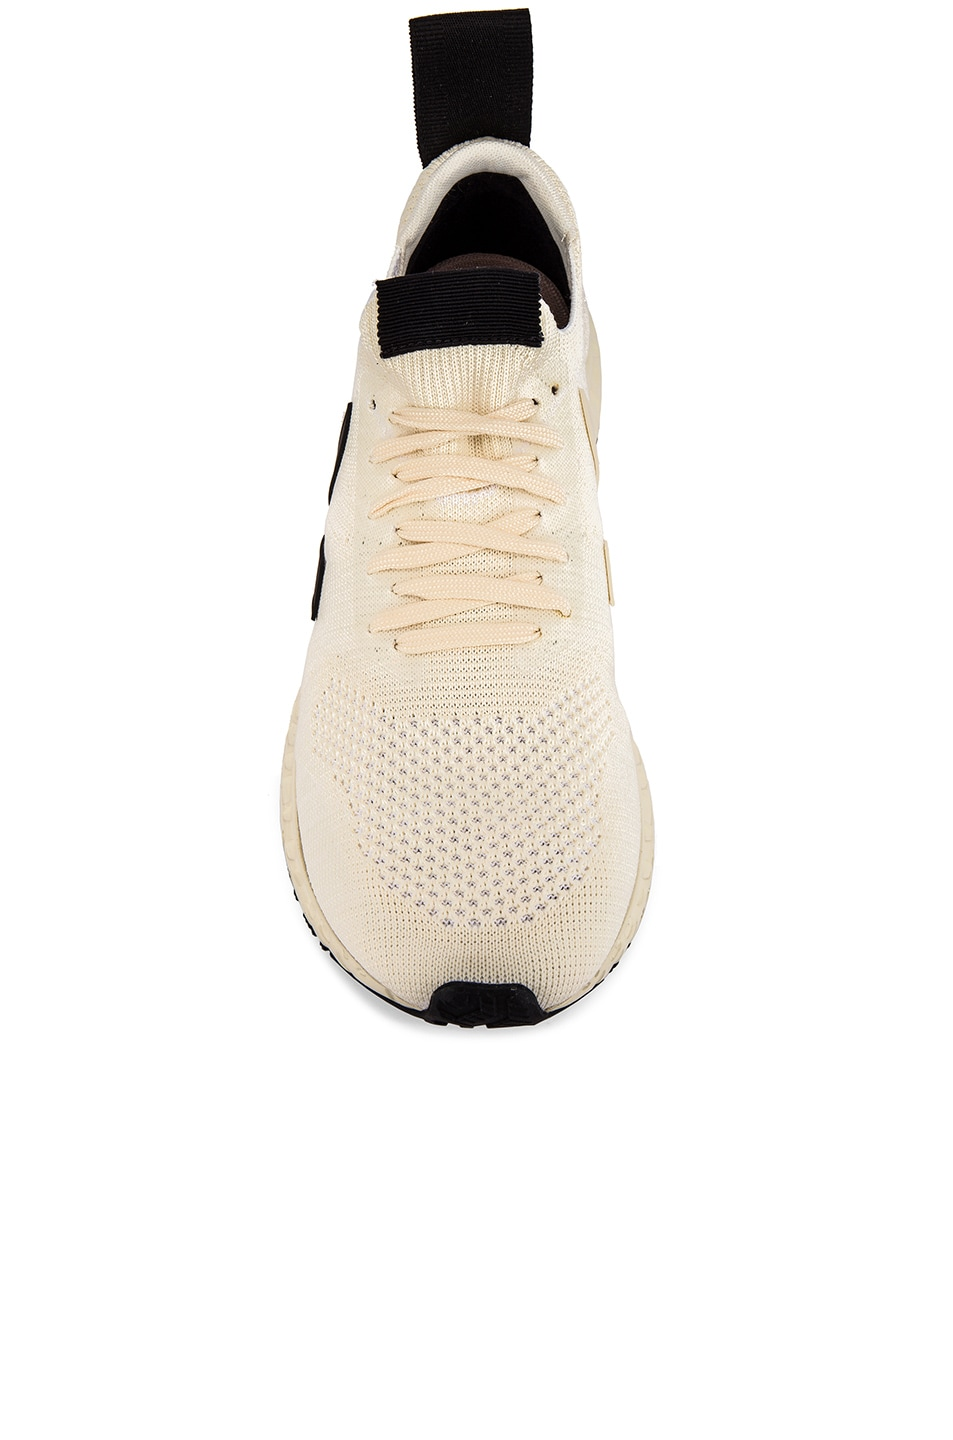 Image 4 of Rick Owens x Veja Sneakers in White in Wite